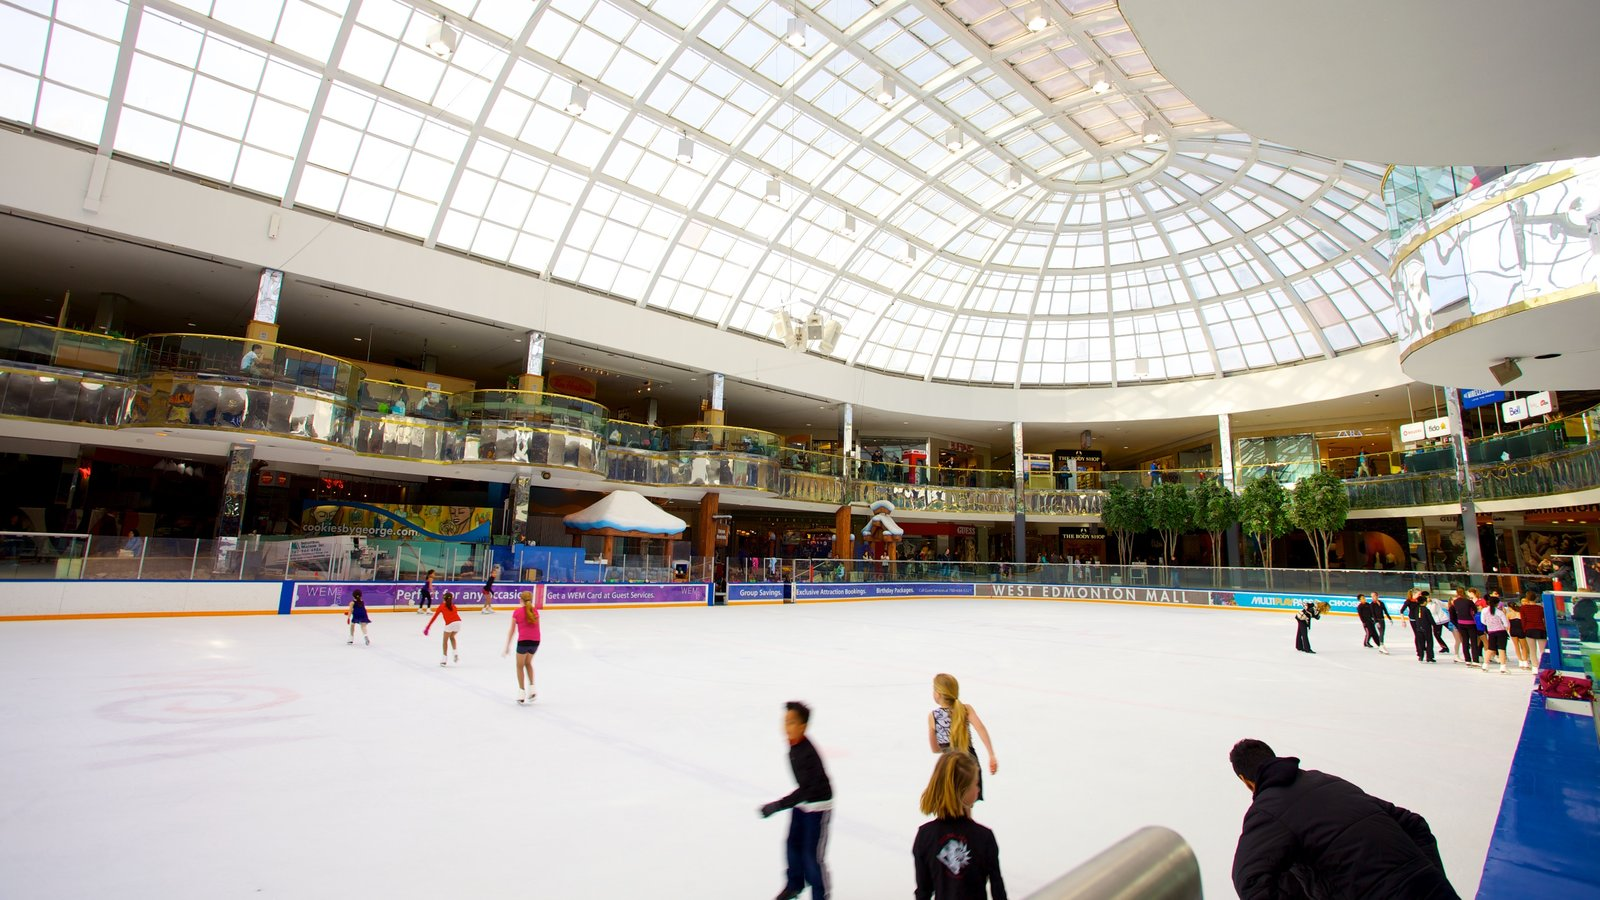 West Edmonton Mall showing modern architecture, interior views and ice skating